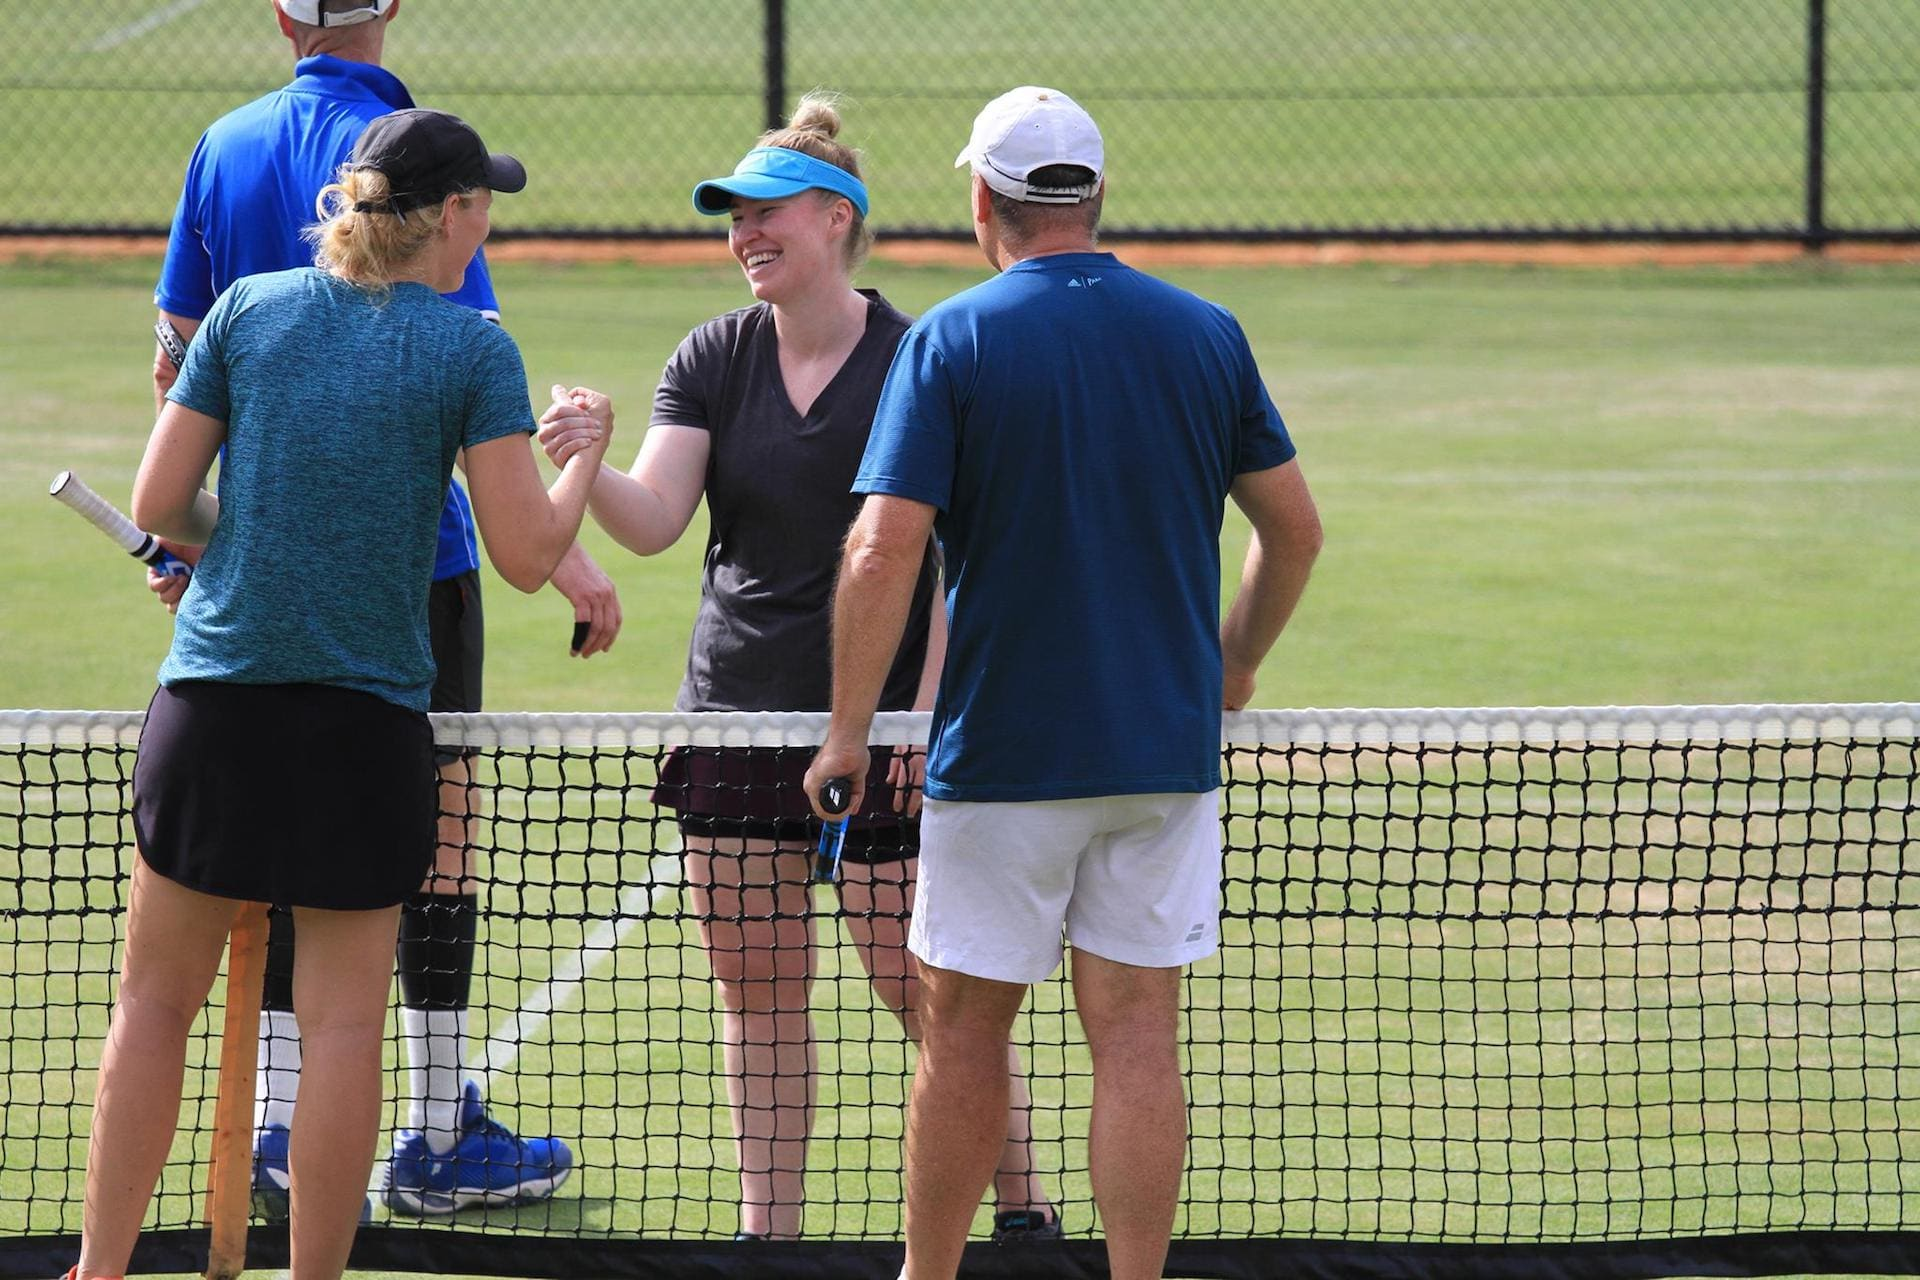 https://www.tennisexcellence.com.au/wp-content/uploads/2020/01/Home_Programs_Adults.jpg